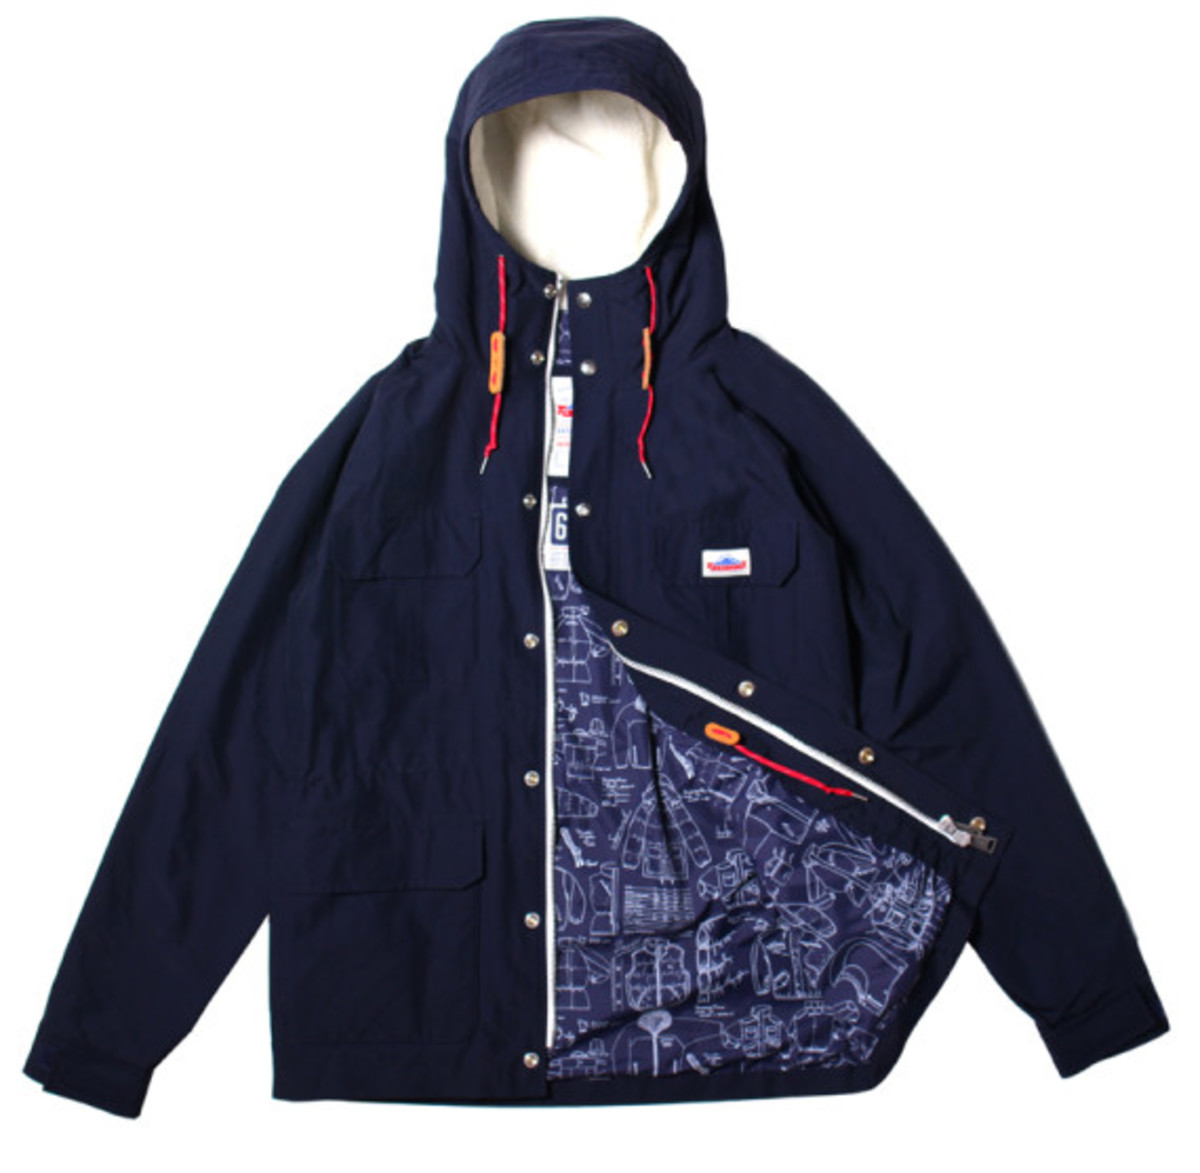 penfield-unveils-40th-anniversary-collection-01